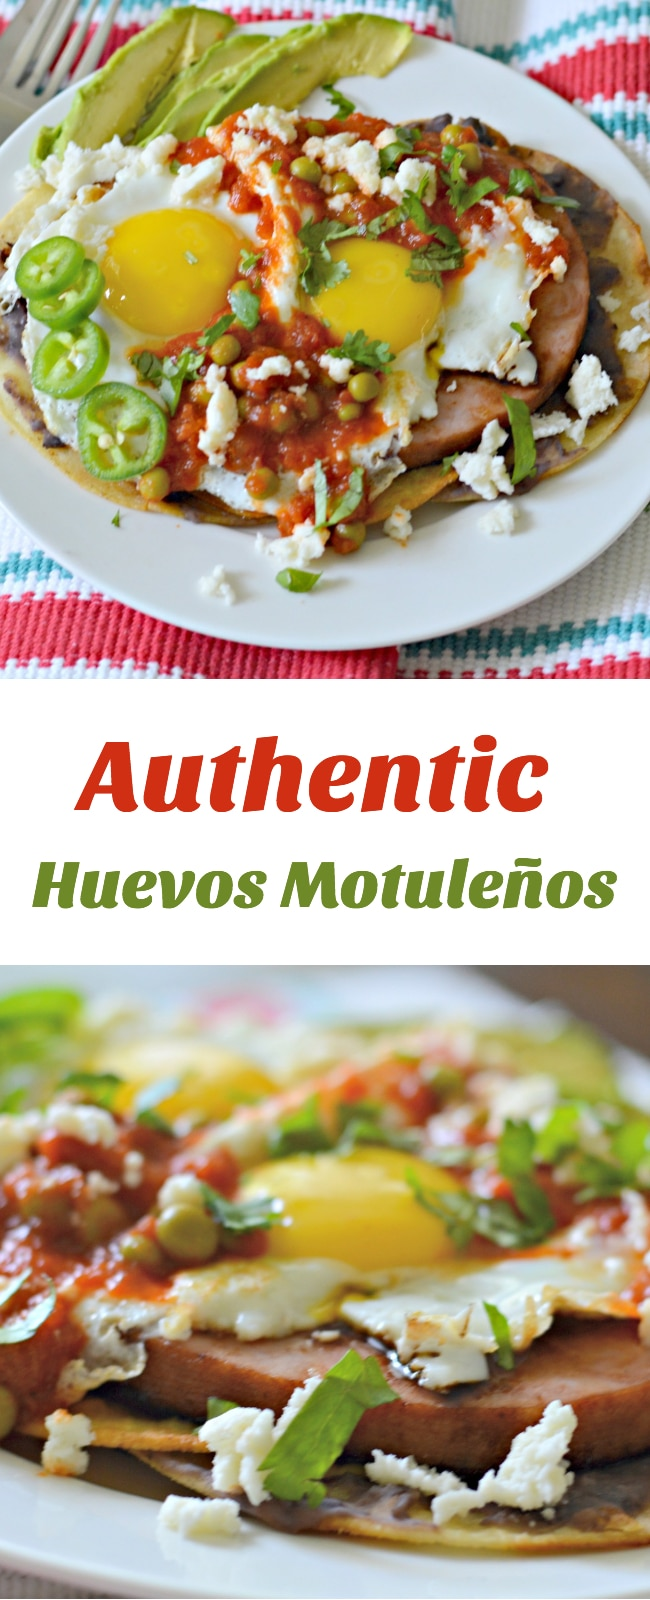 Huevos Motulenos is a traditional Mexican breakfast originating from Motul, Yucatan. It combines fried tortillas with beans, eggs, ham, and salsa roja for a hearty, delicious breakfast. AD